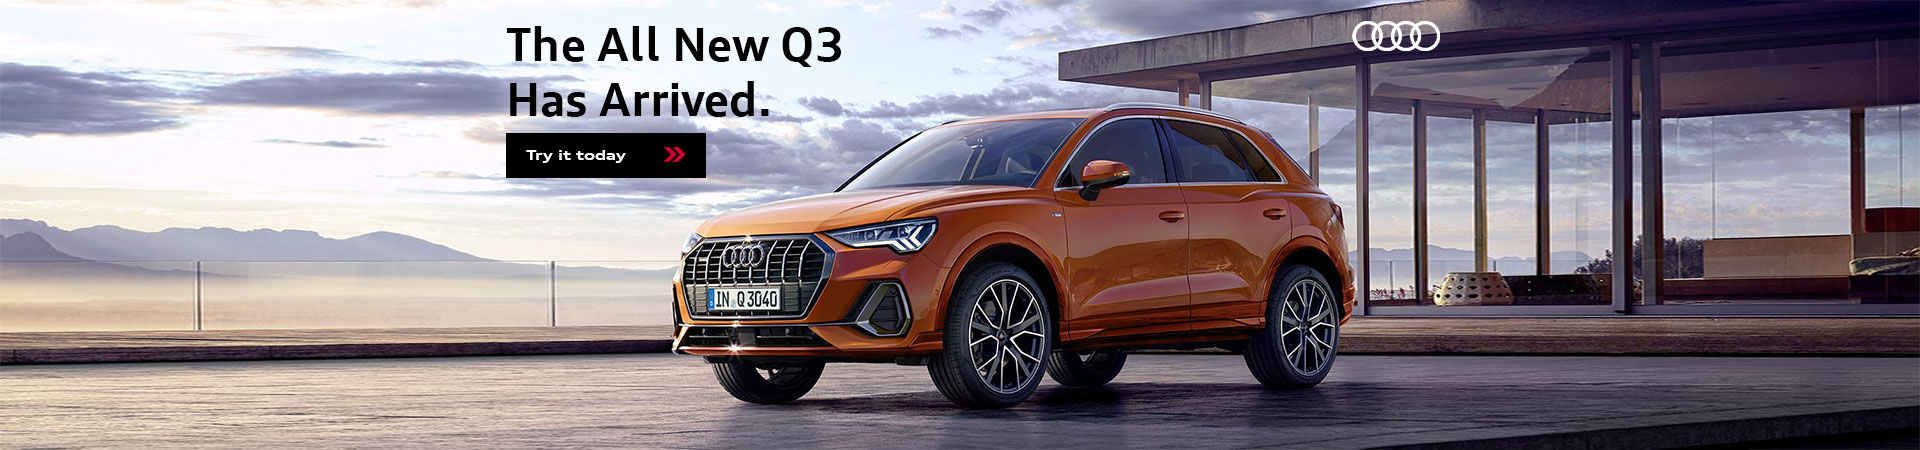 All New Audi Q3 Has Arrived